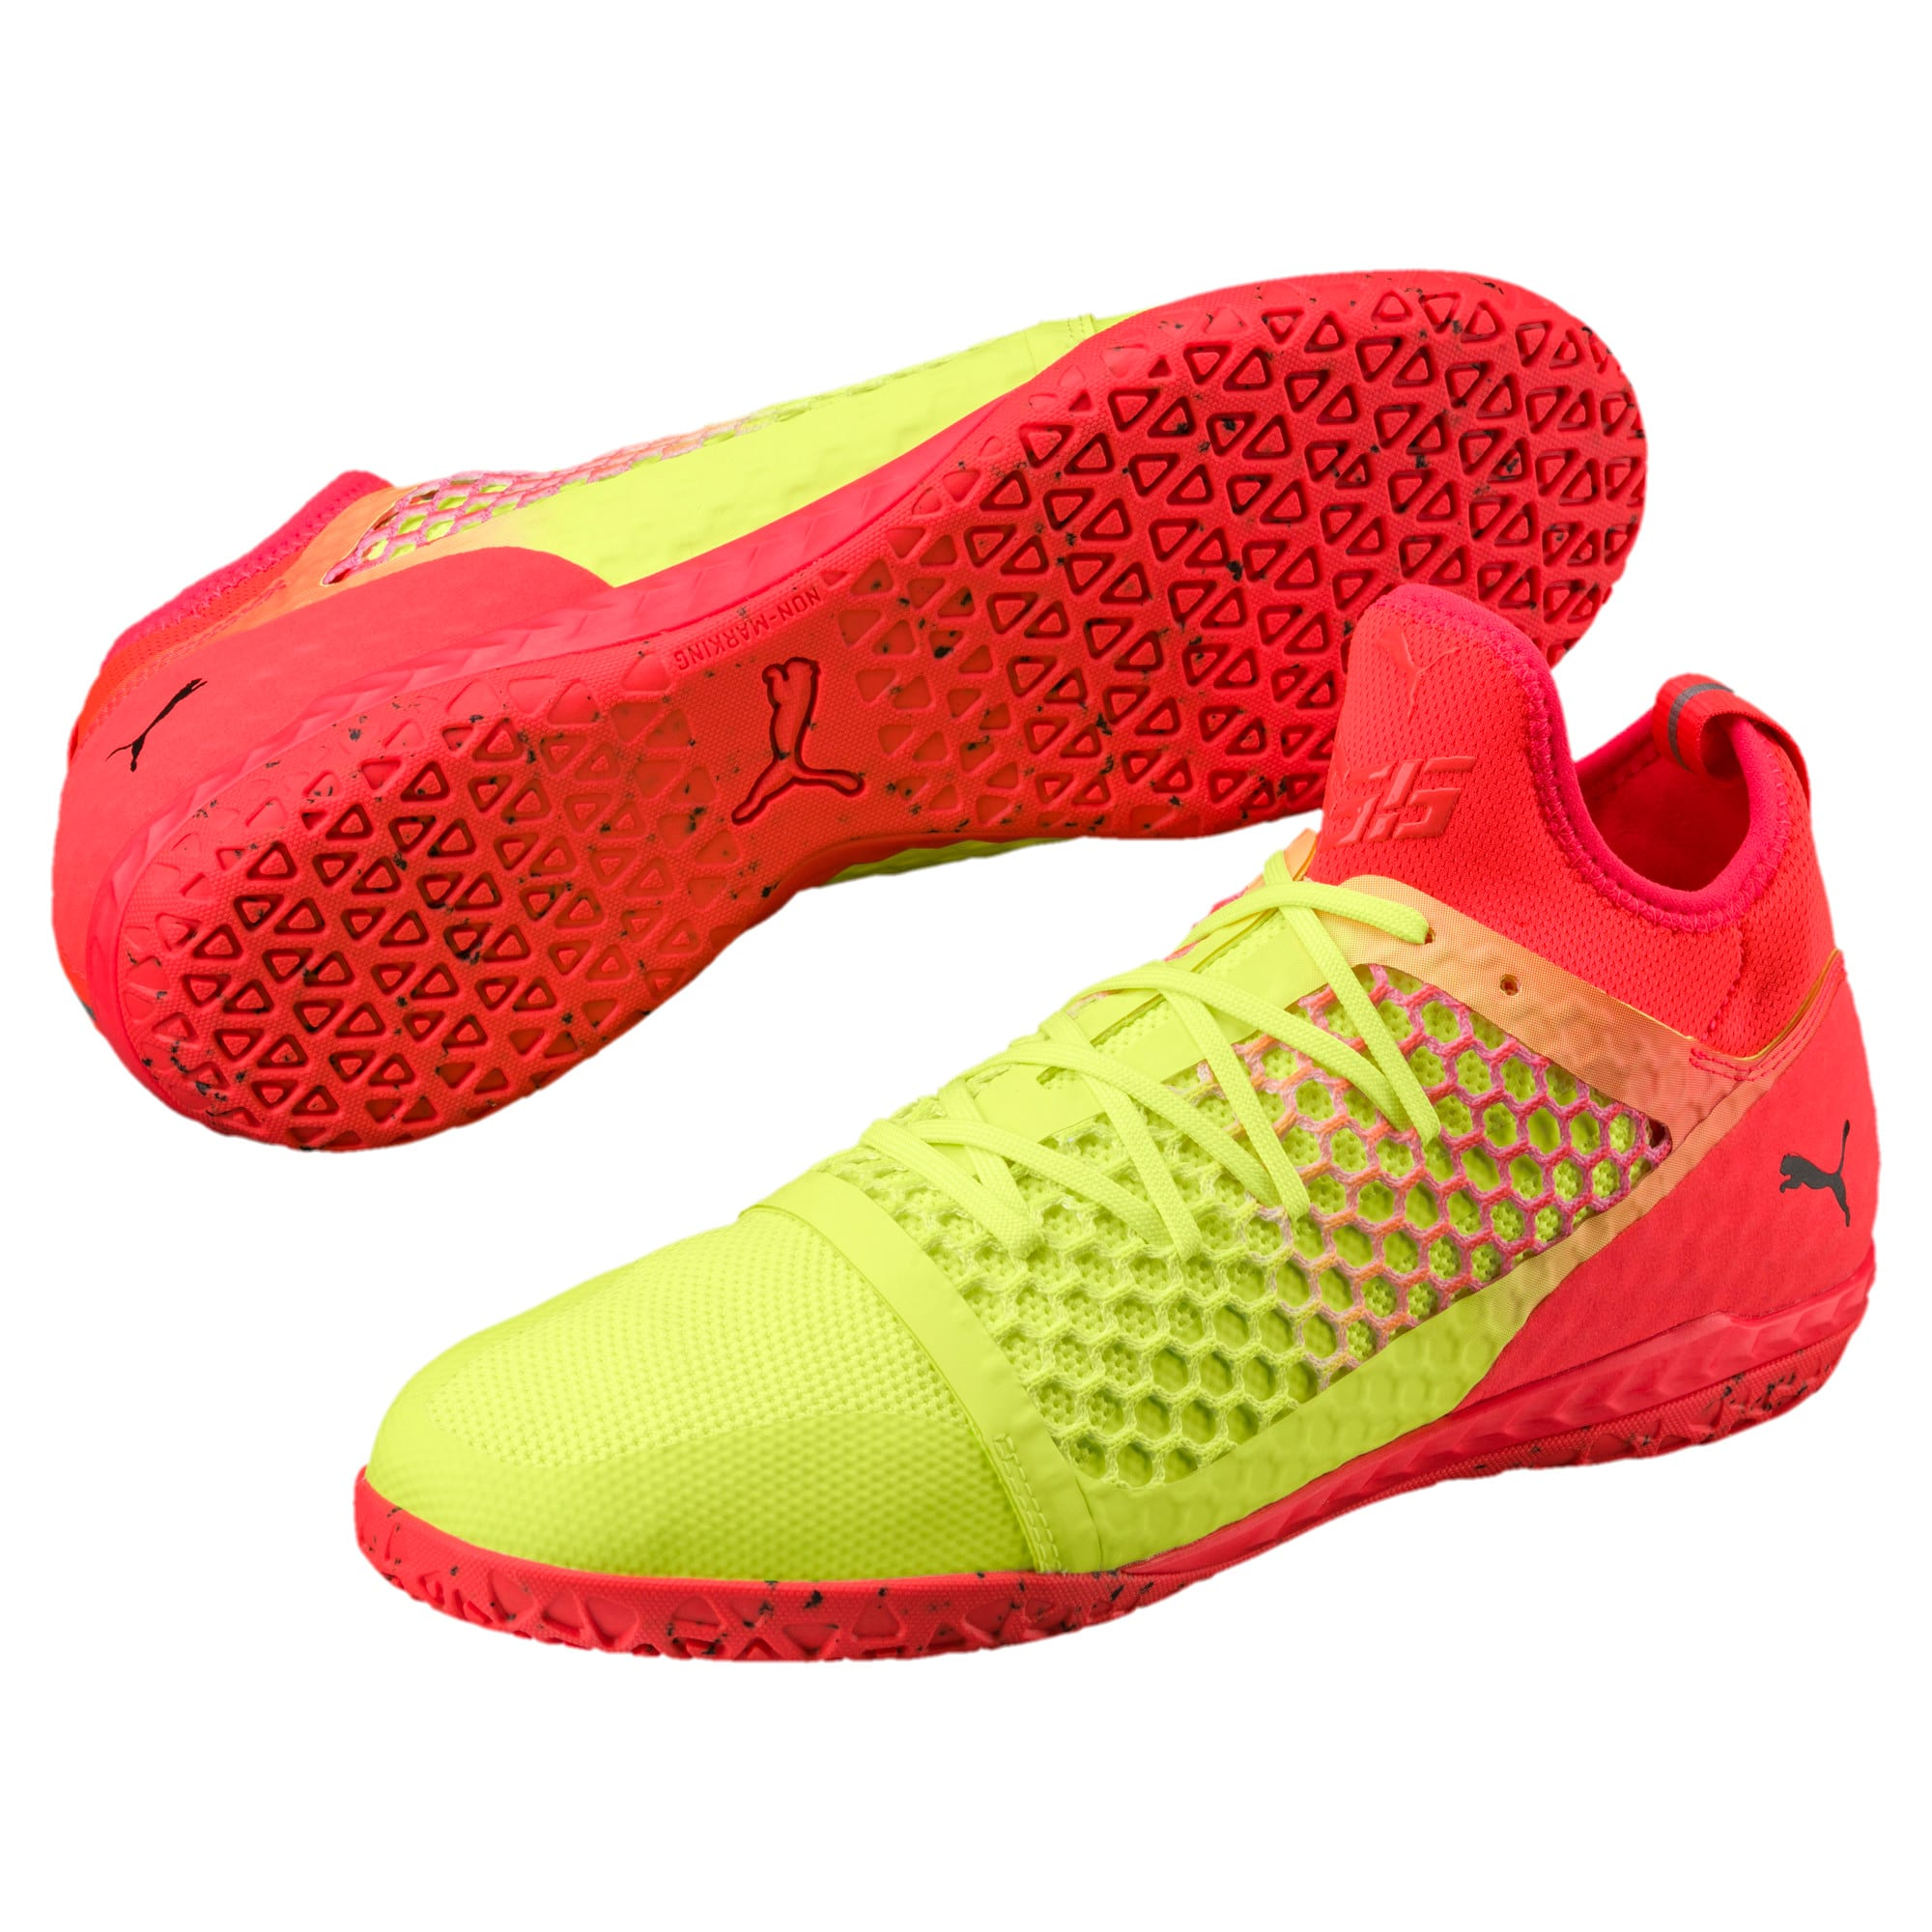 Thumbnail 2 of 365 IGNITE NETFIT CT Men's Court Football Boots, Yellow-Red-Black, medium-IND